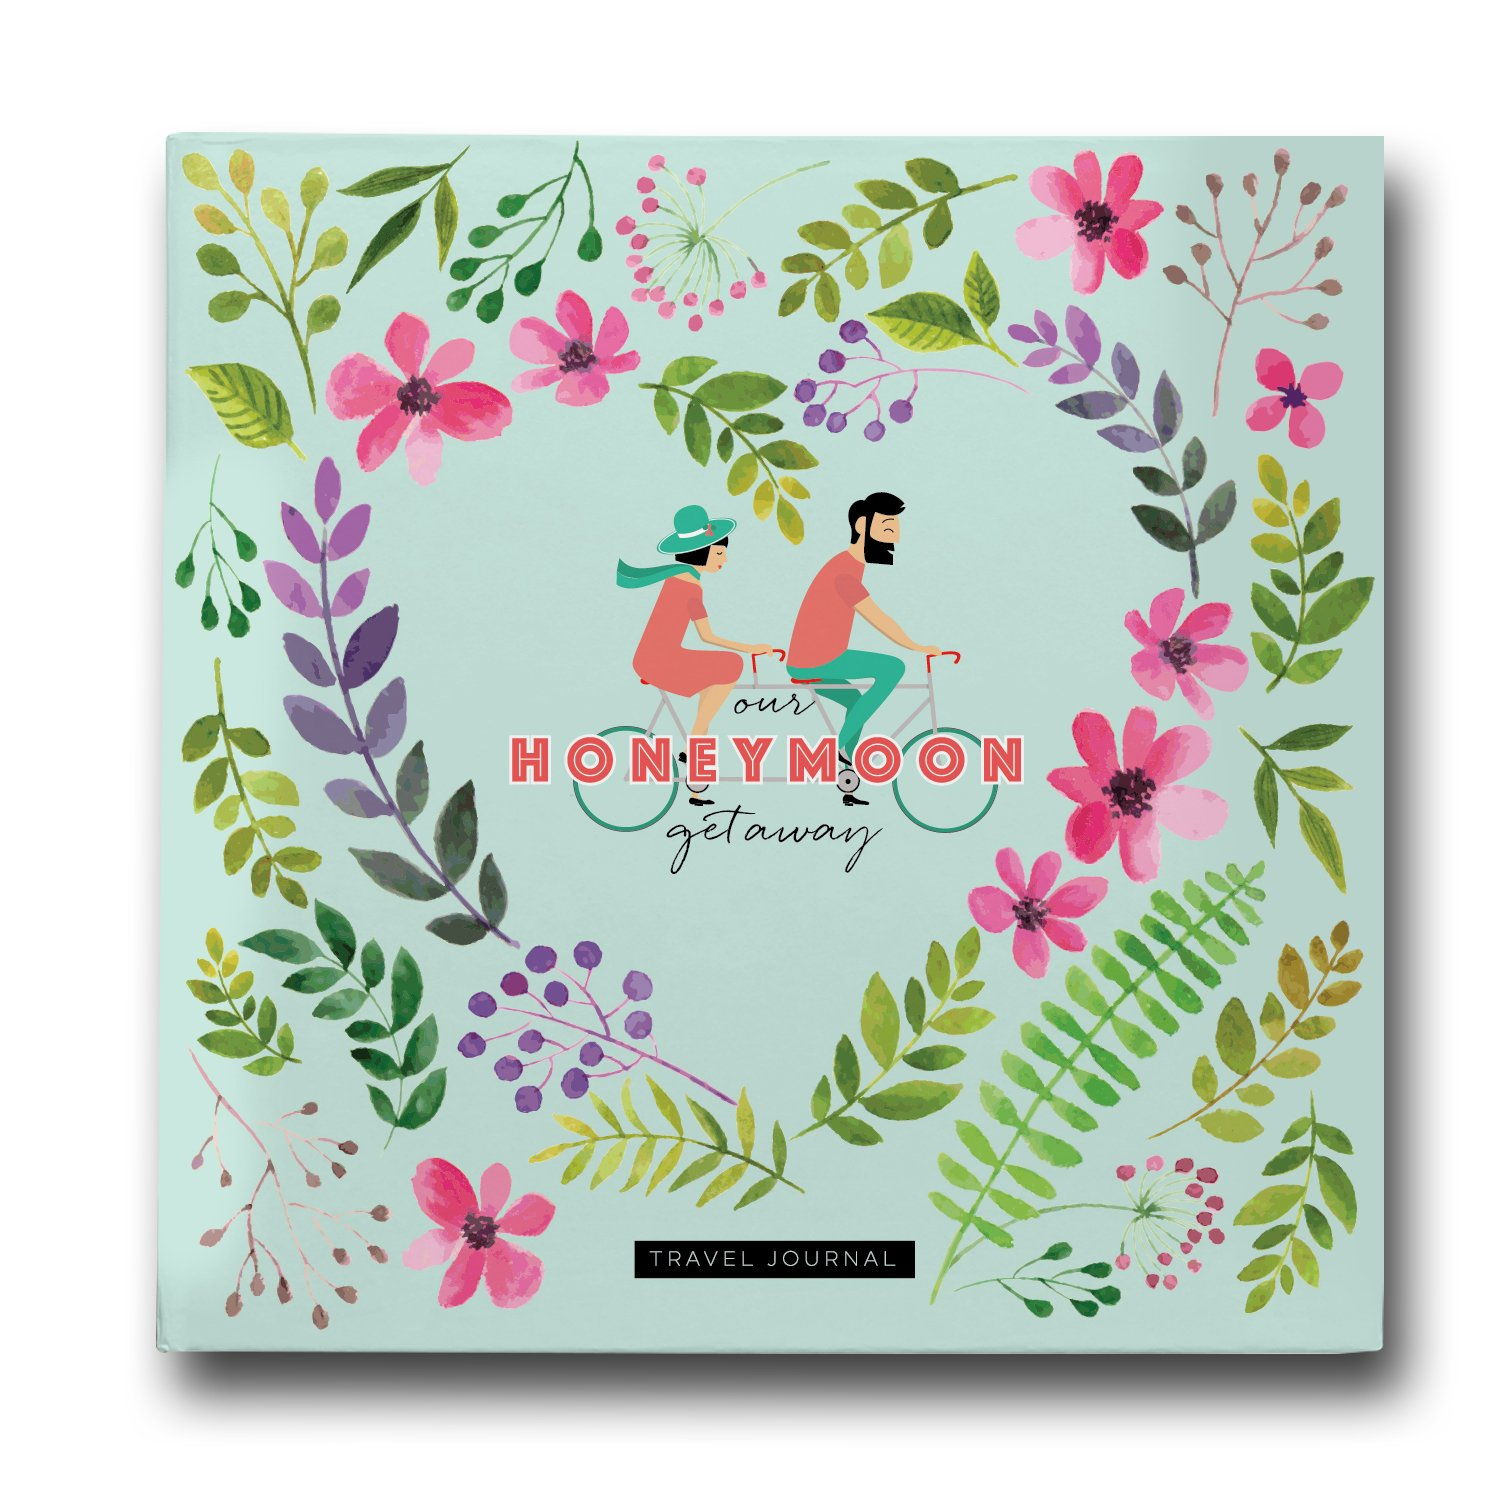 Pillow & Toast Honeymoon Travel Journal, Record-Book Trip Together, Save All Experiences On This Memory Album, A Just Married Present or Gift Like No Other for Him and Her.